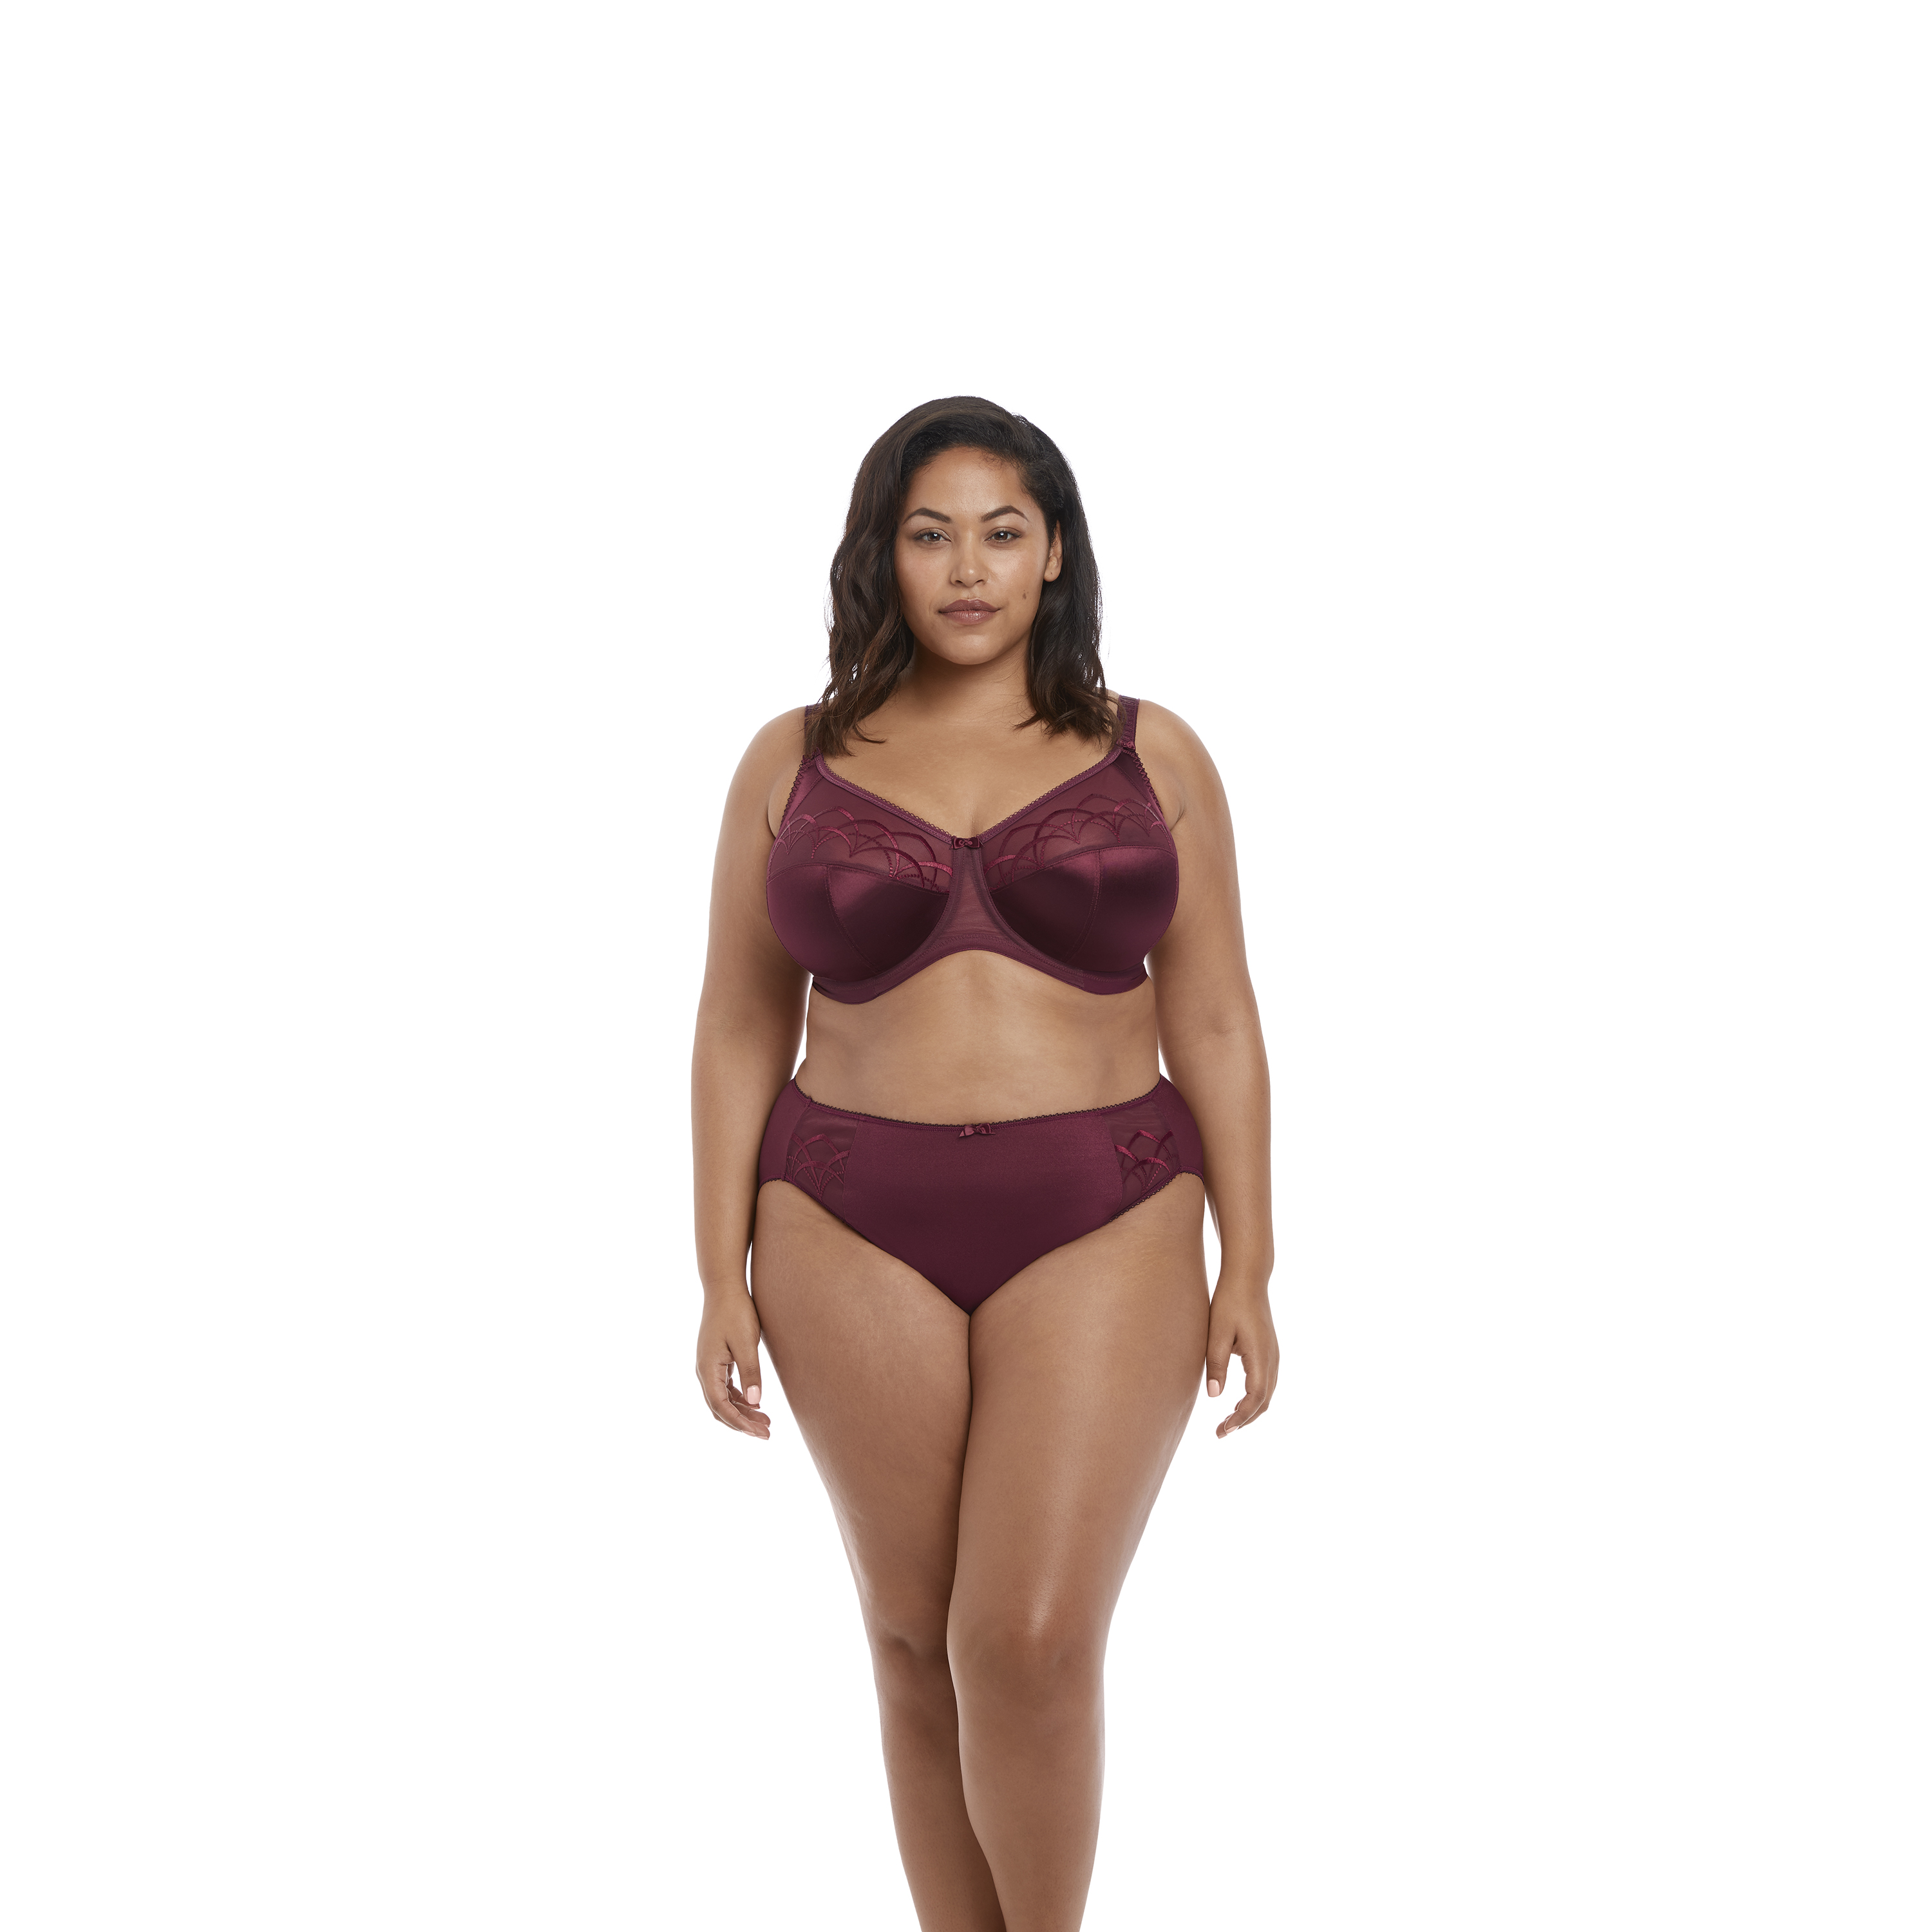 c1b9a9d3033 Elomi Bras Where To Buy